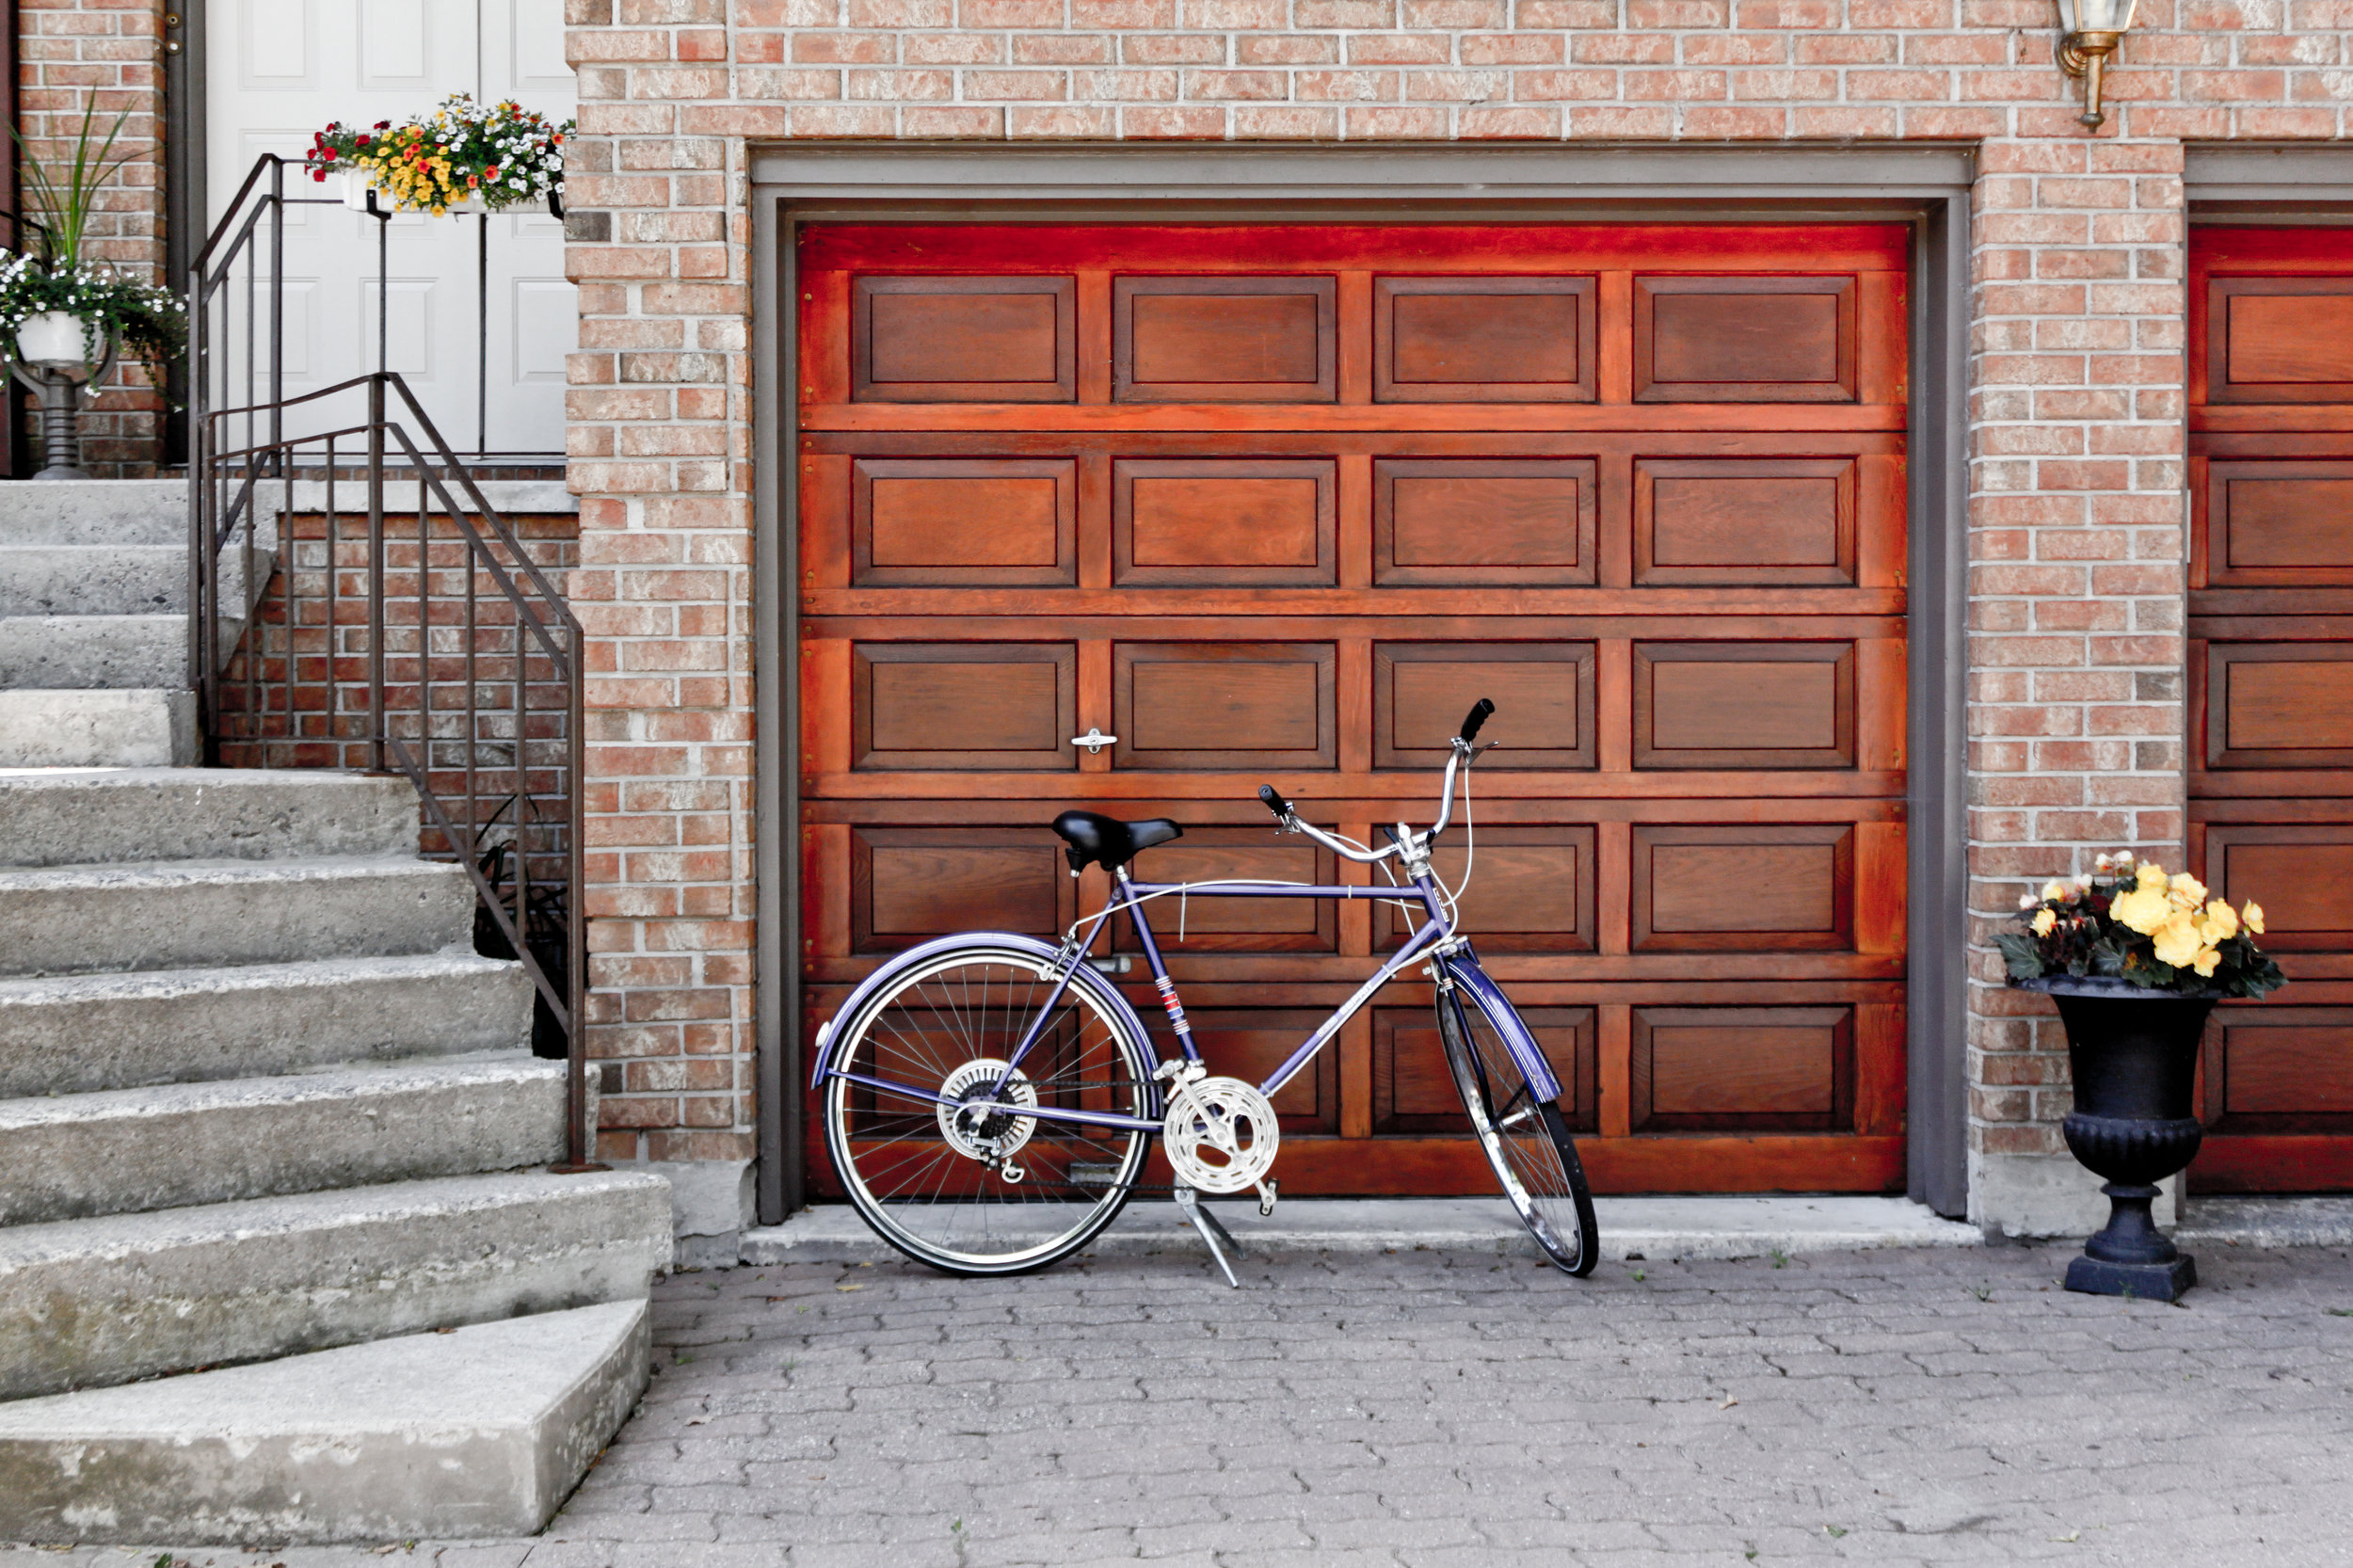 Garage Conversions offer the opportunity for more space and higher value to your home.